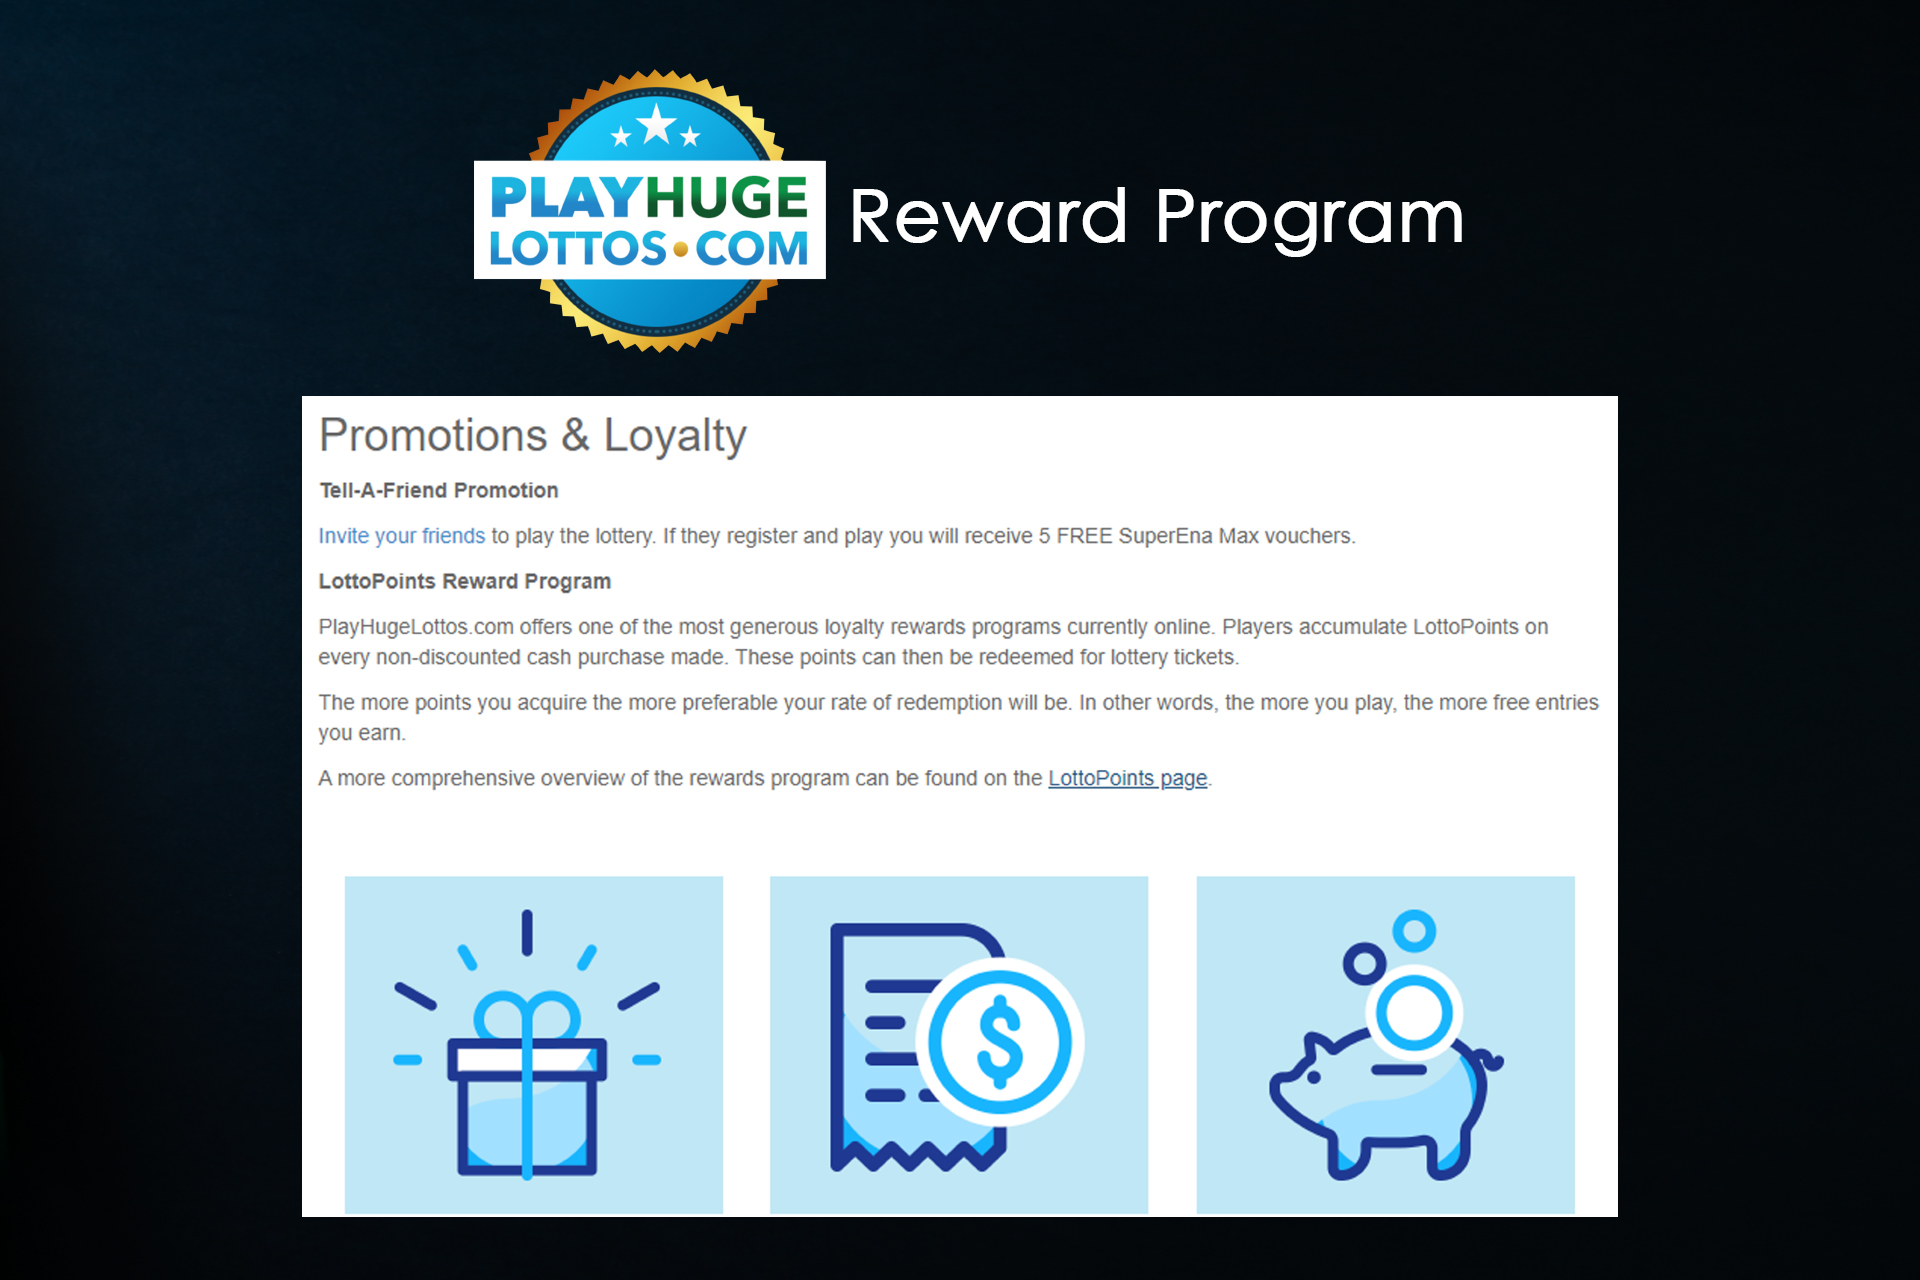 Read the terms and conditions of the Reward Program correctly to be able to receive bonuses.